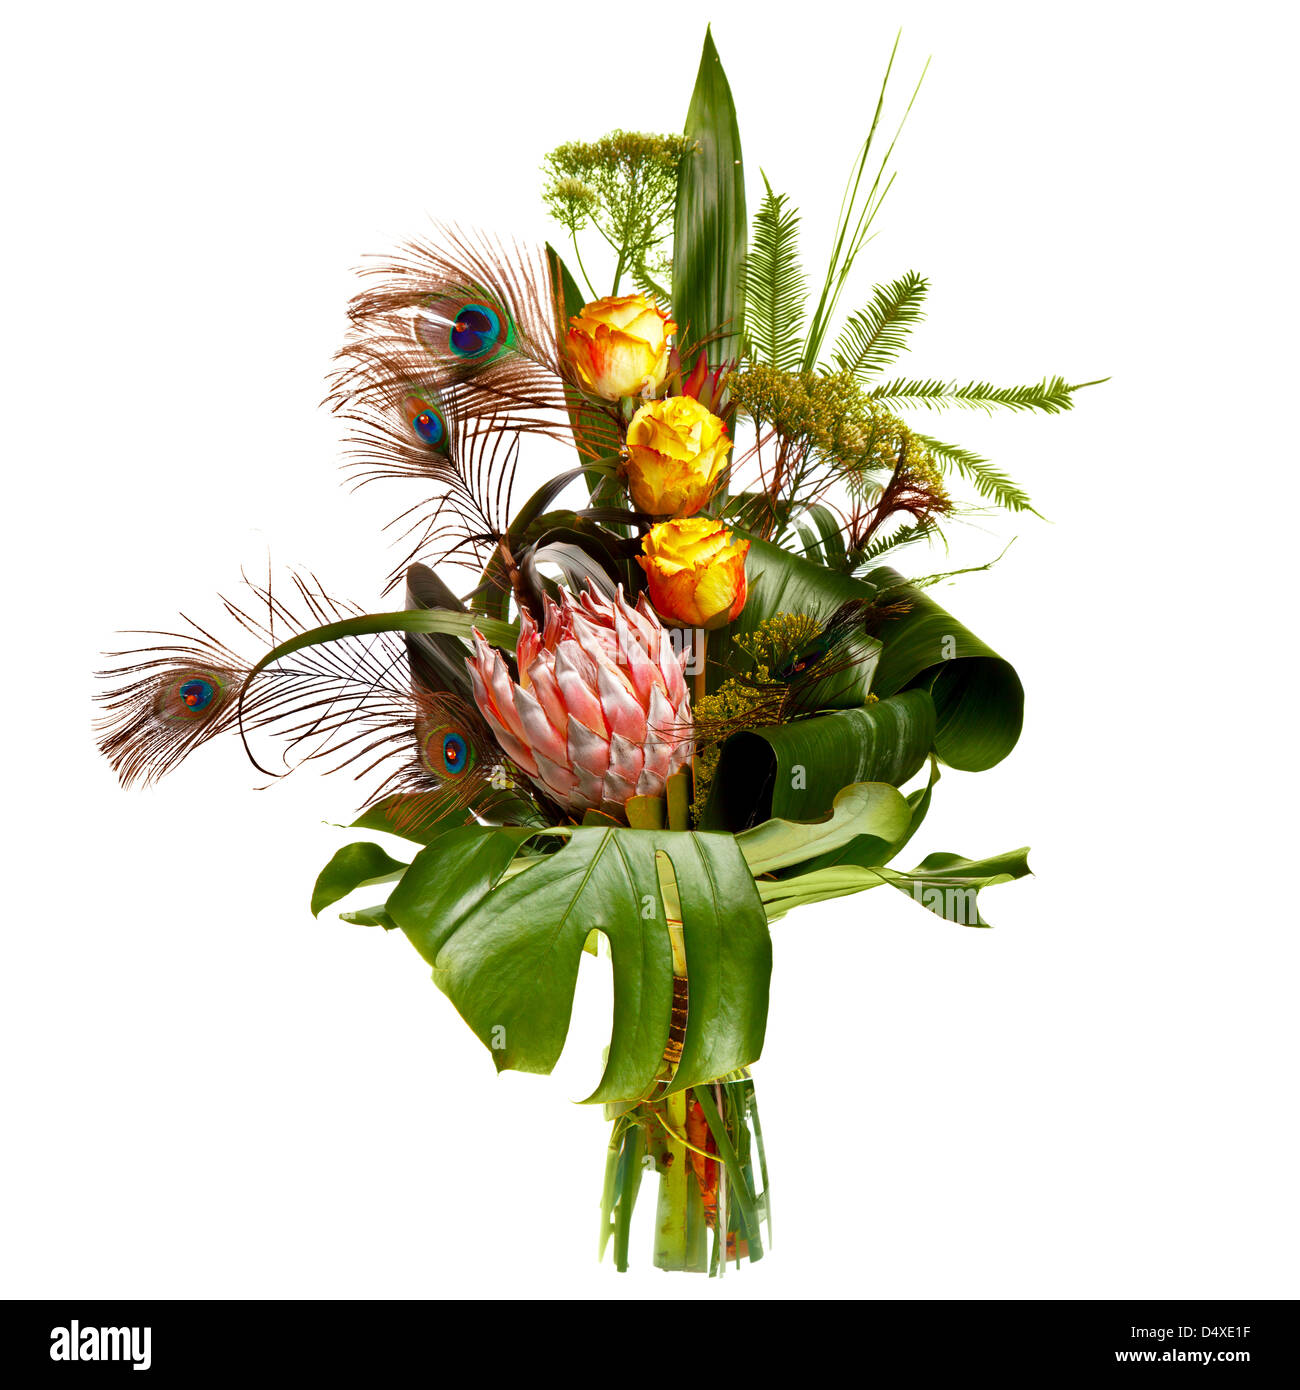 male bouquet with peacock feathers, isolated over white background - Stock Image